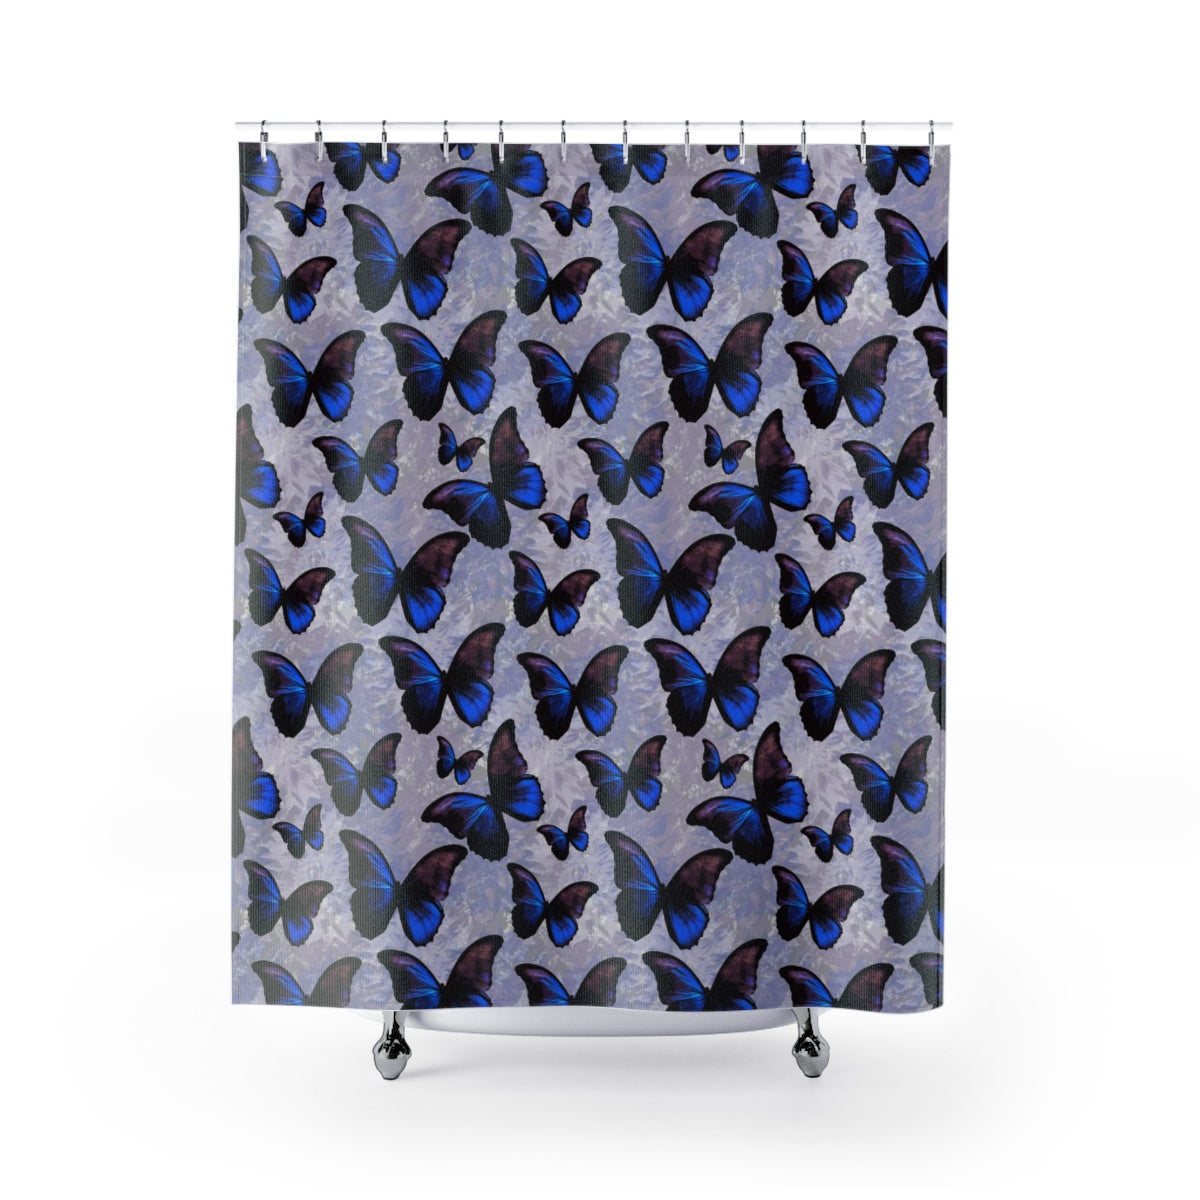 Purple and Blue Morpho Butterfly Shower Curtain - Metro Shower Curtains